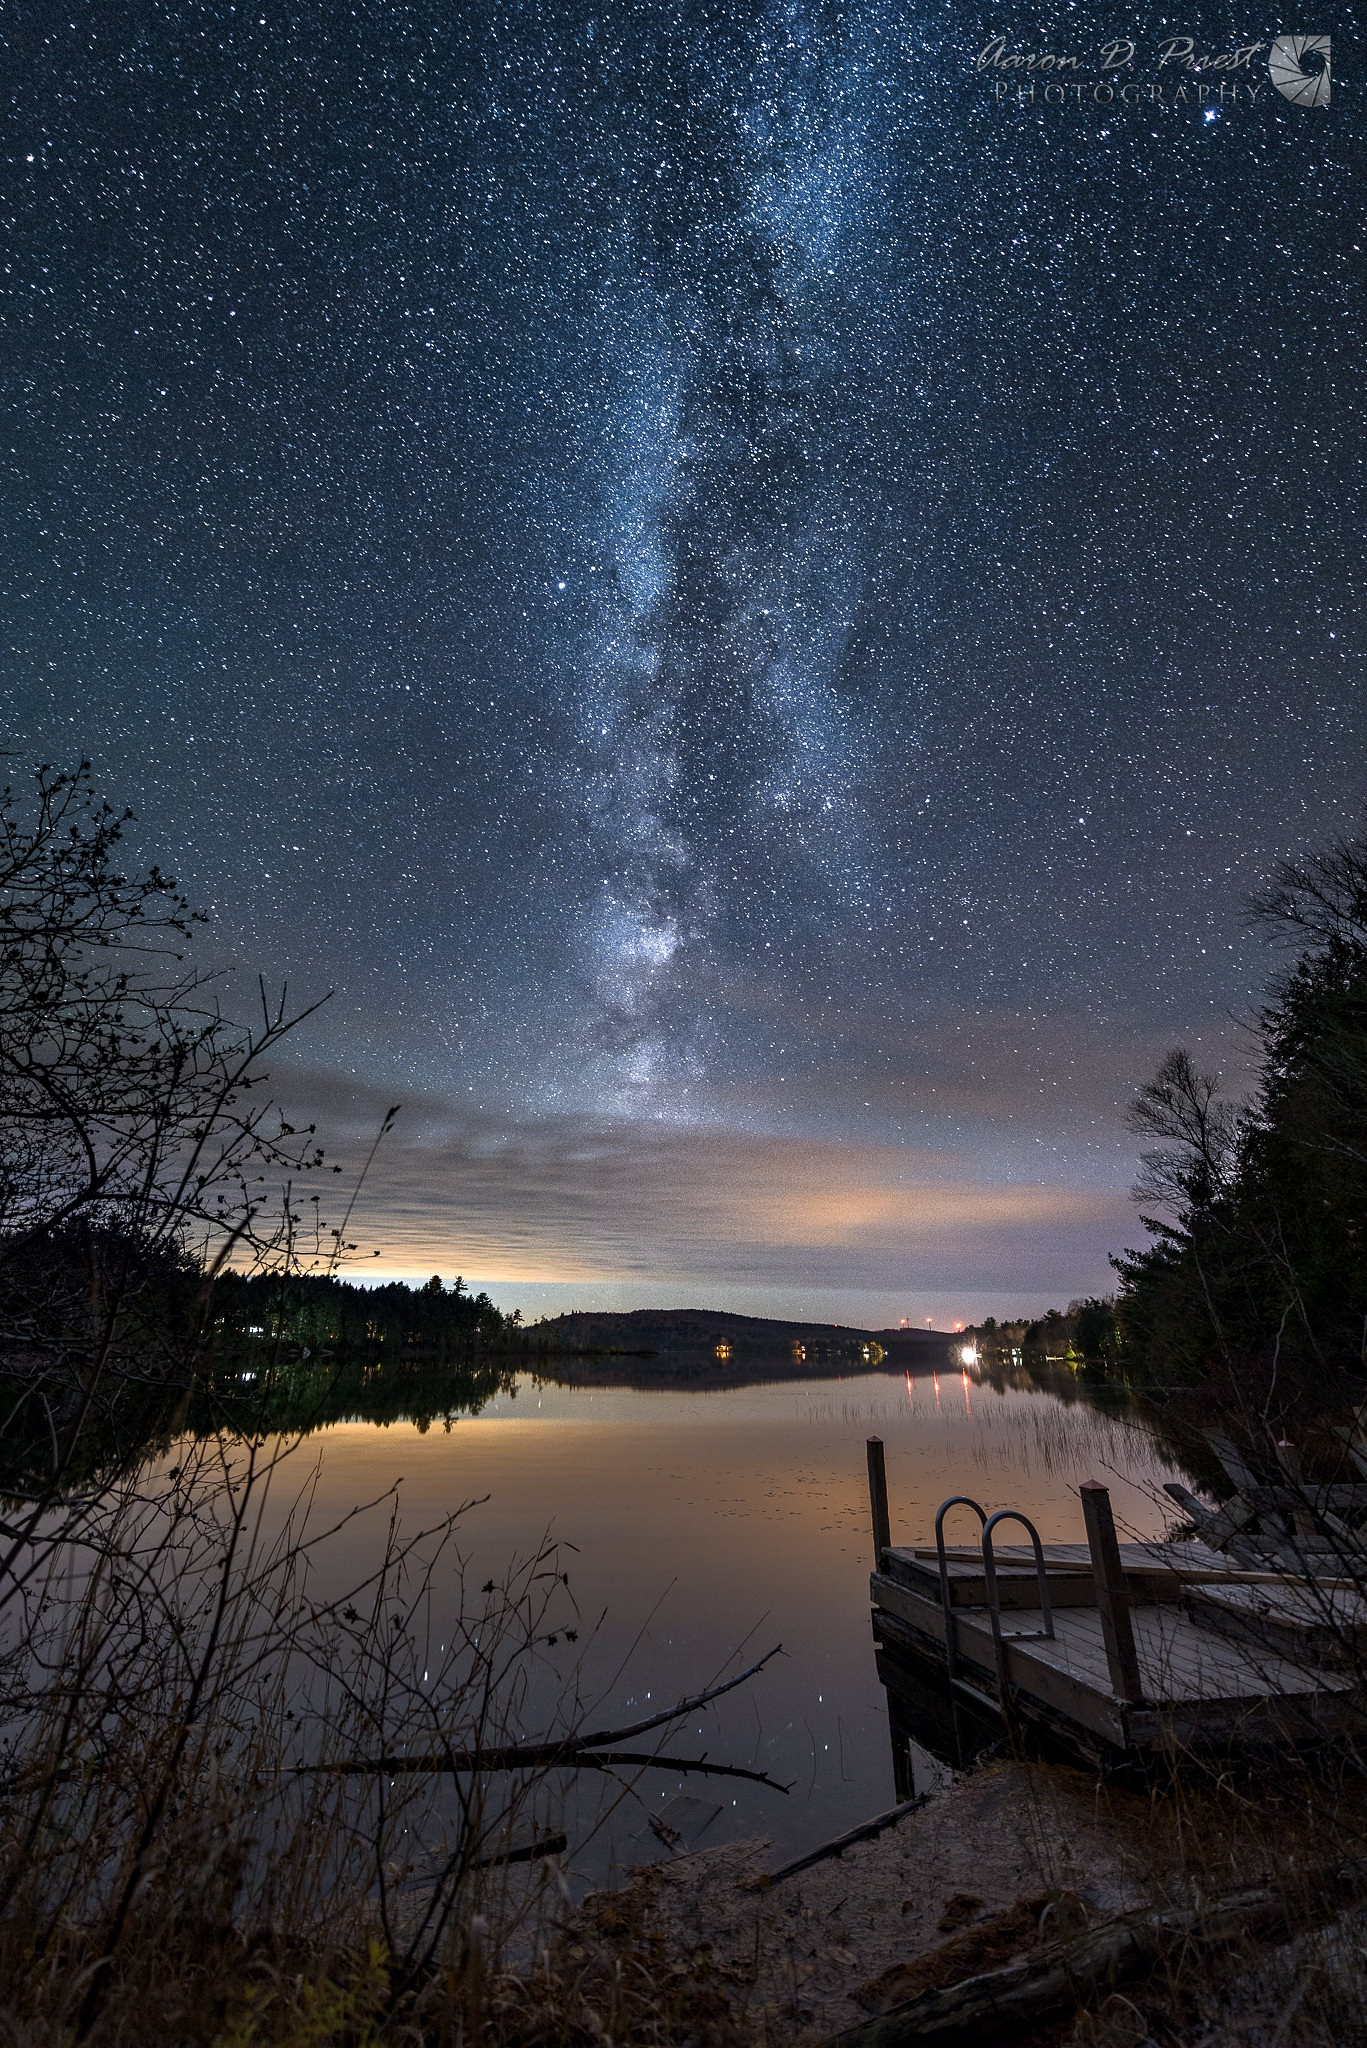 Milky Way over Silver Lake, Lee, Maine by Aaron D. Priest